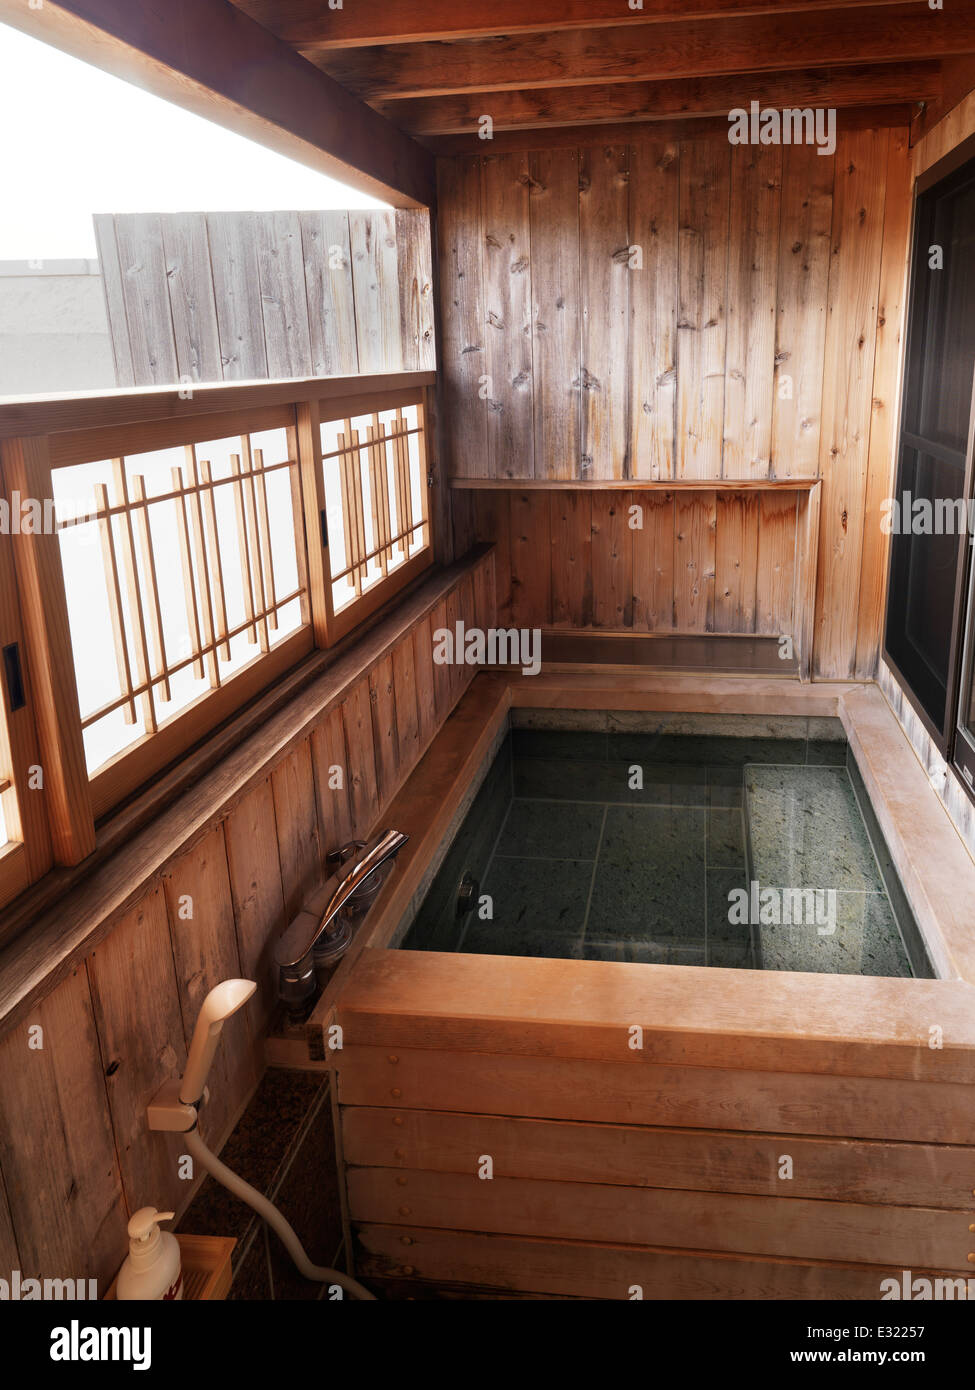 Onsen, bain thermal à l'onglet d'un ryokan hôtel traditionnel japonais. Fujikawaguchiko,. Photo Stock